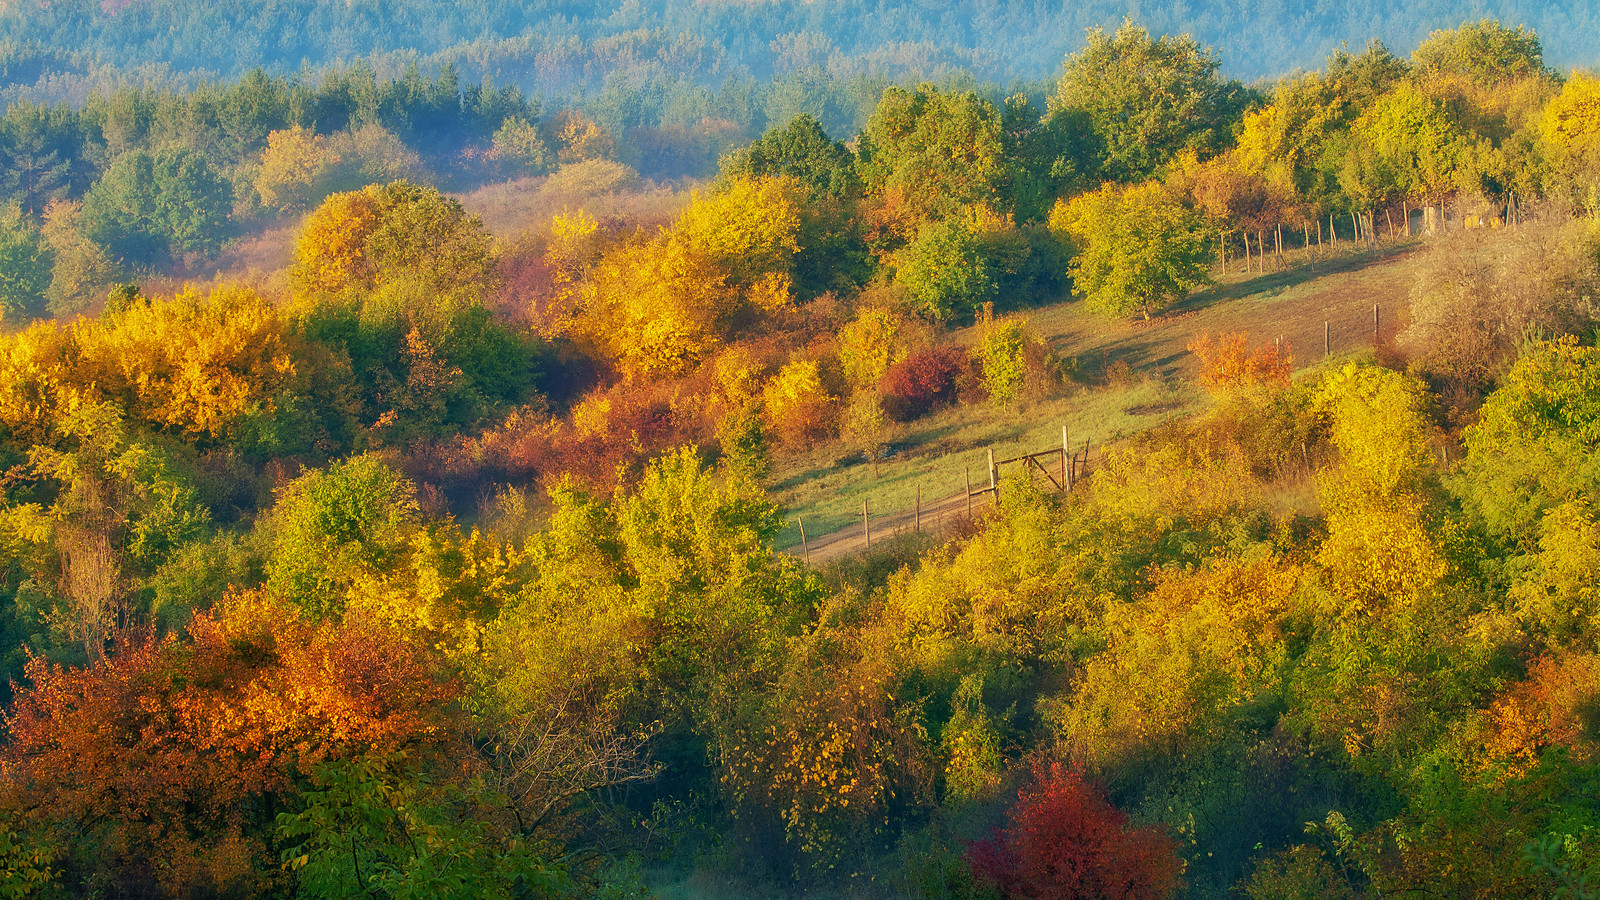 Colorful autumn landscape near Vác